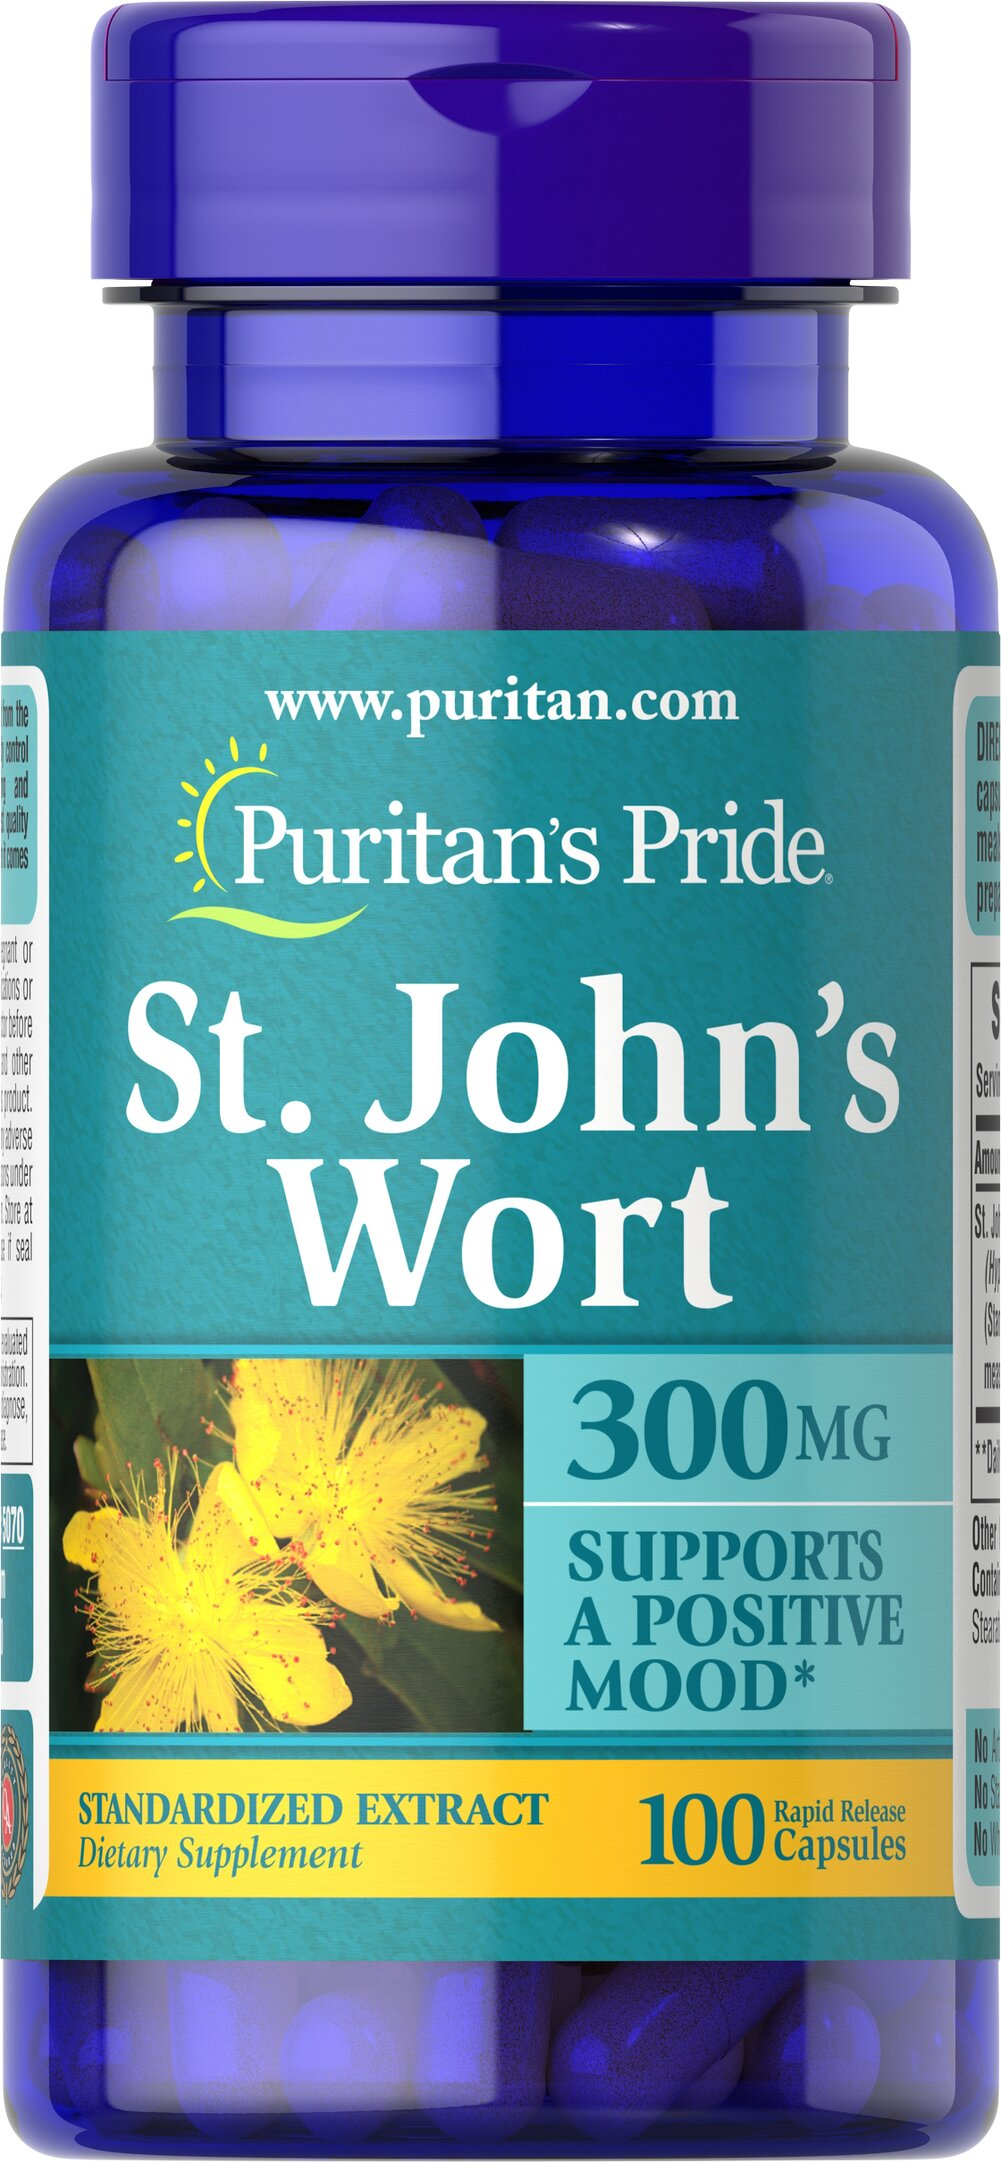 St. John's Wort Standardized Extract 300 mg <p>St. John's Wort has been used for centuries as a tonic to promote mental well-being and peaceful mood.** St. John's Wort can help maintain a positive mood and is perfect for anyone experiencing occasional anxiety and everyday stress.**</p> 100 Capsules 300 mg $17.99